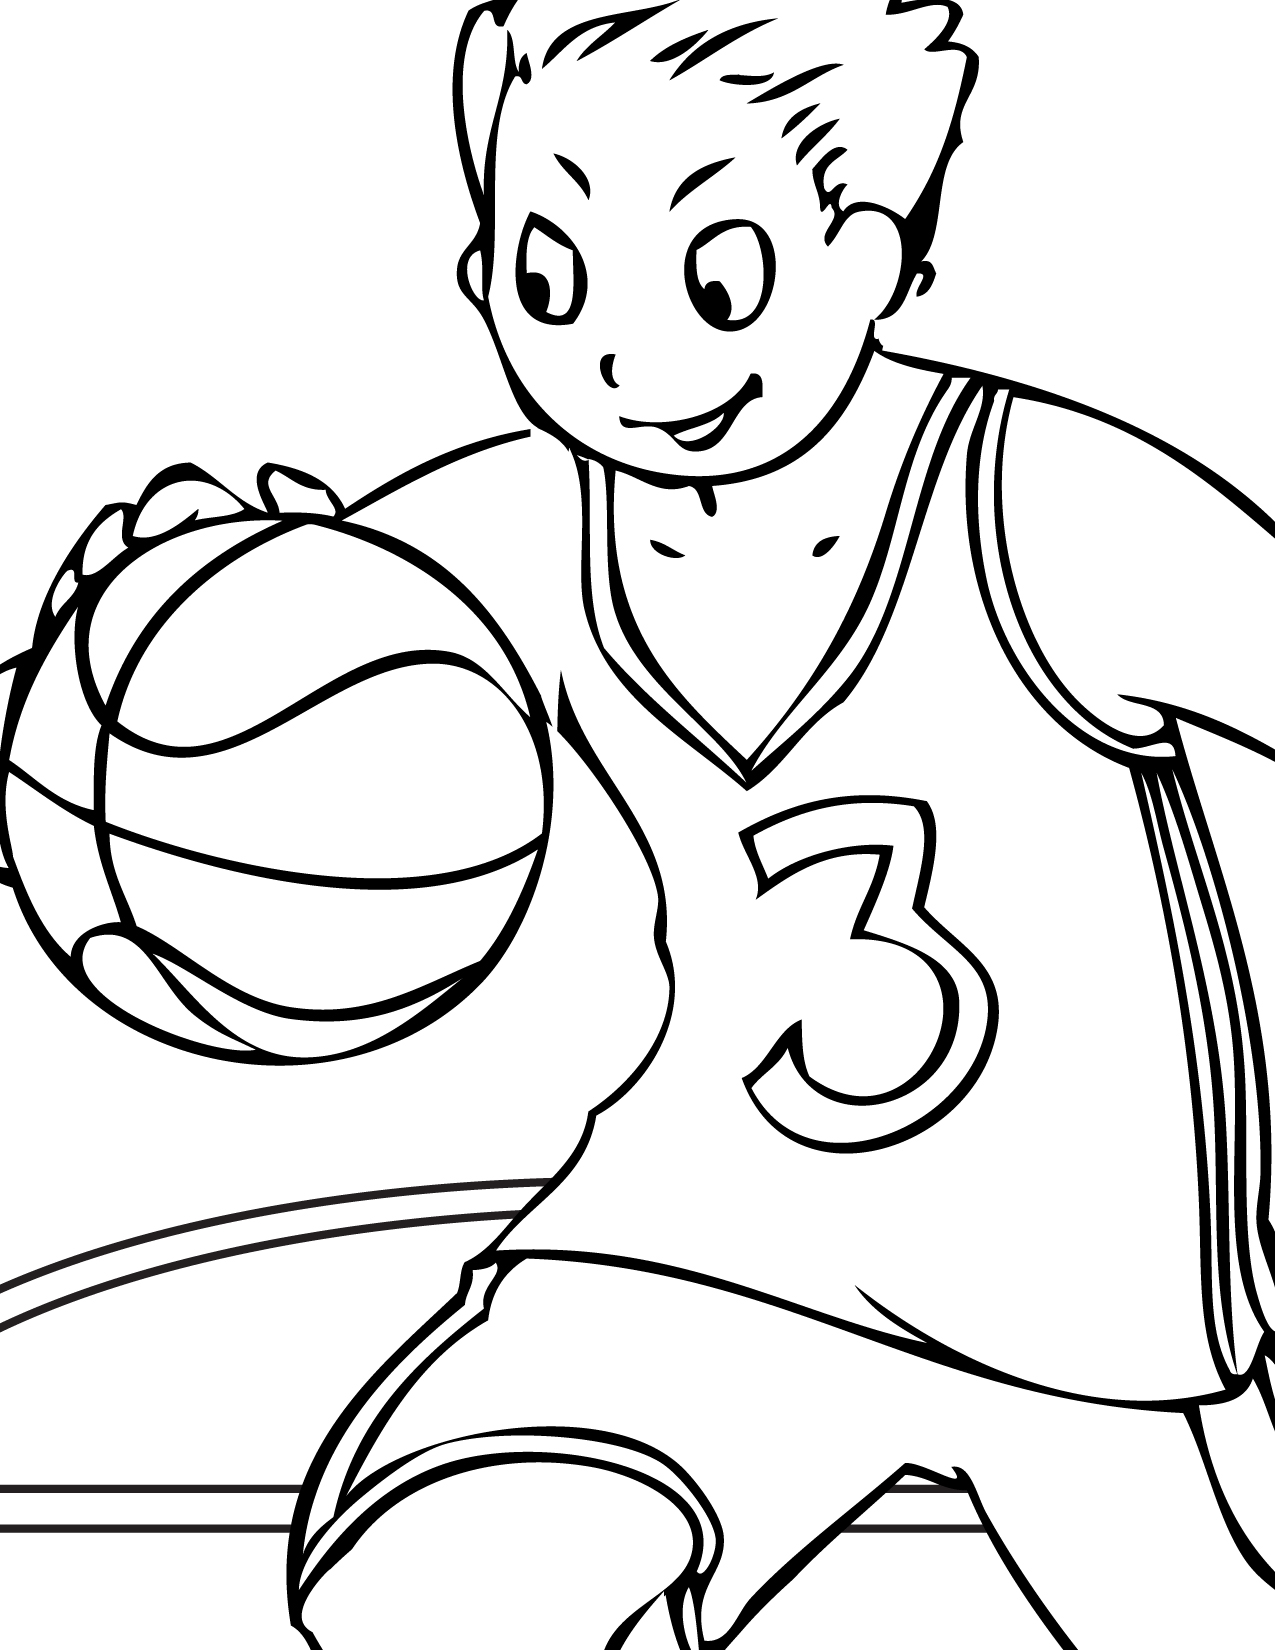 free sports coloring pages for kids printable sports coloring pages